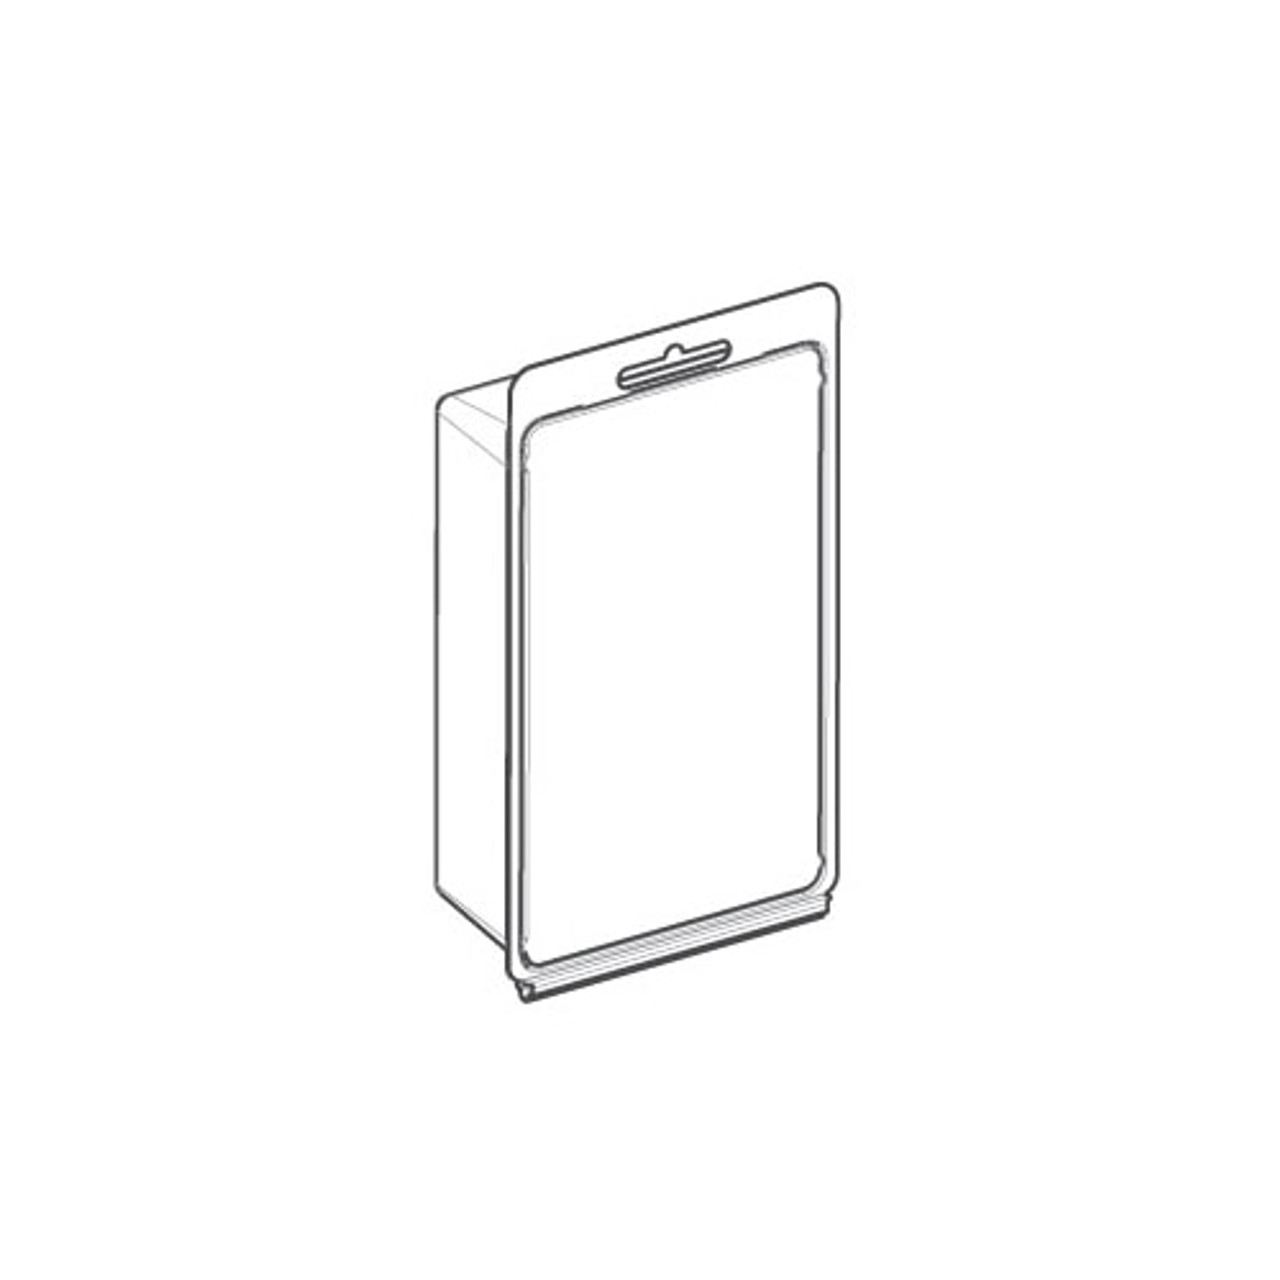 939128 - Stock Clamshell Packaging